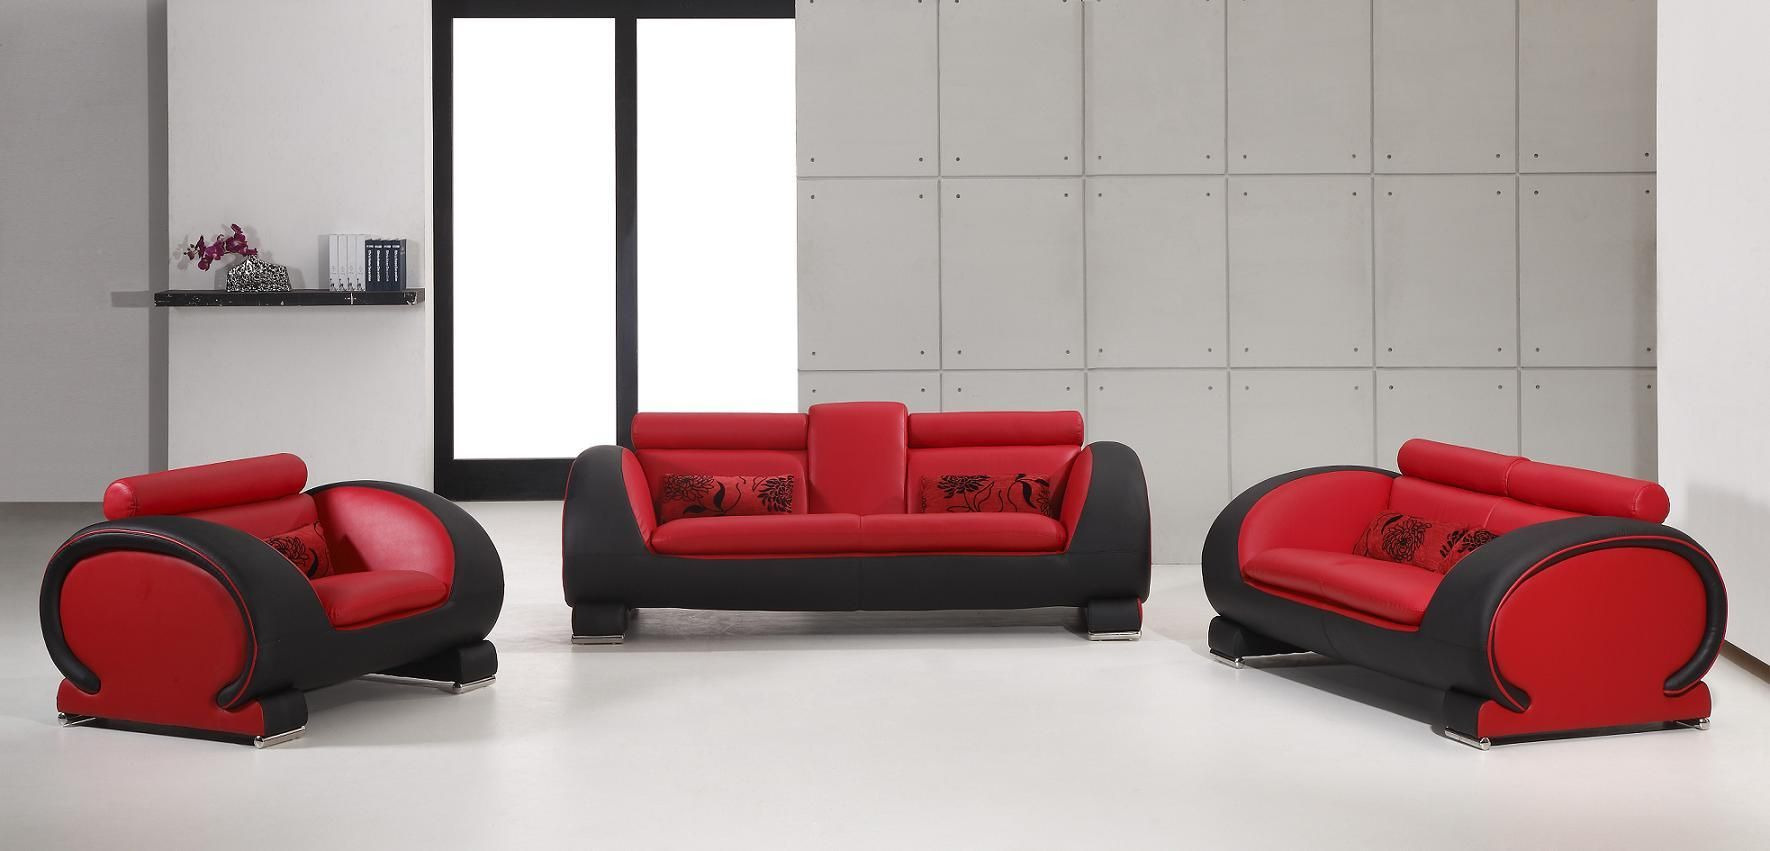 sofa set bonded leather couches living rooms red living rooms living